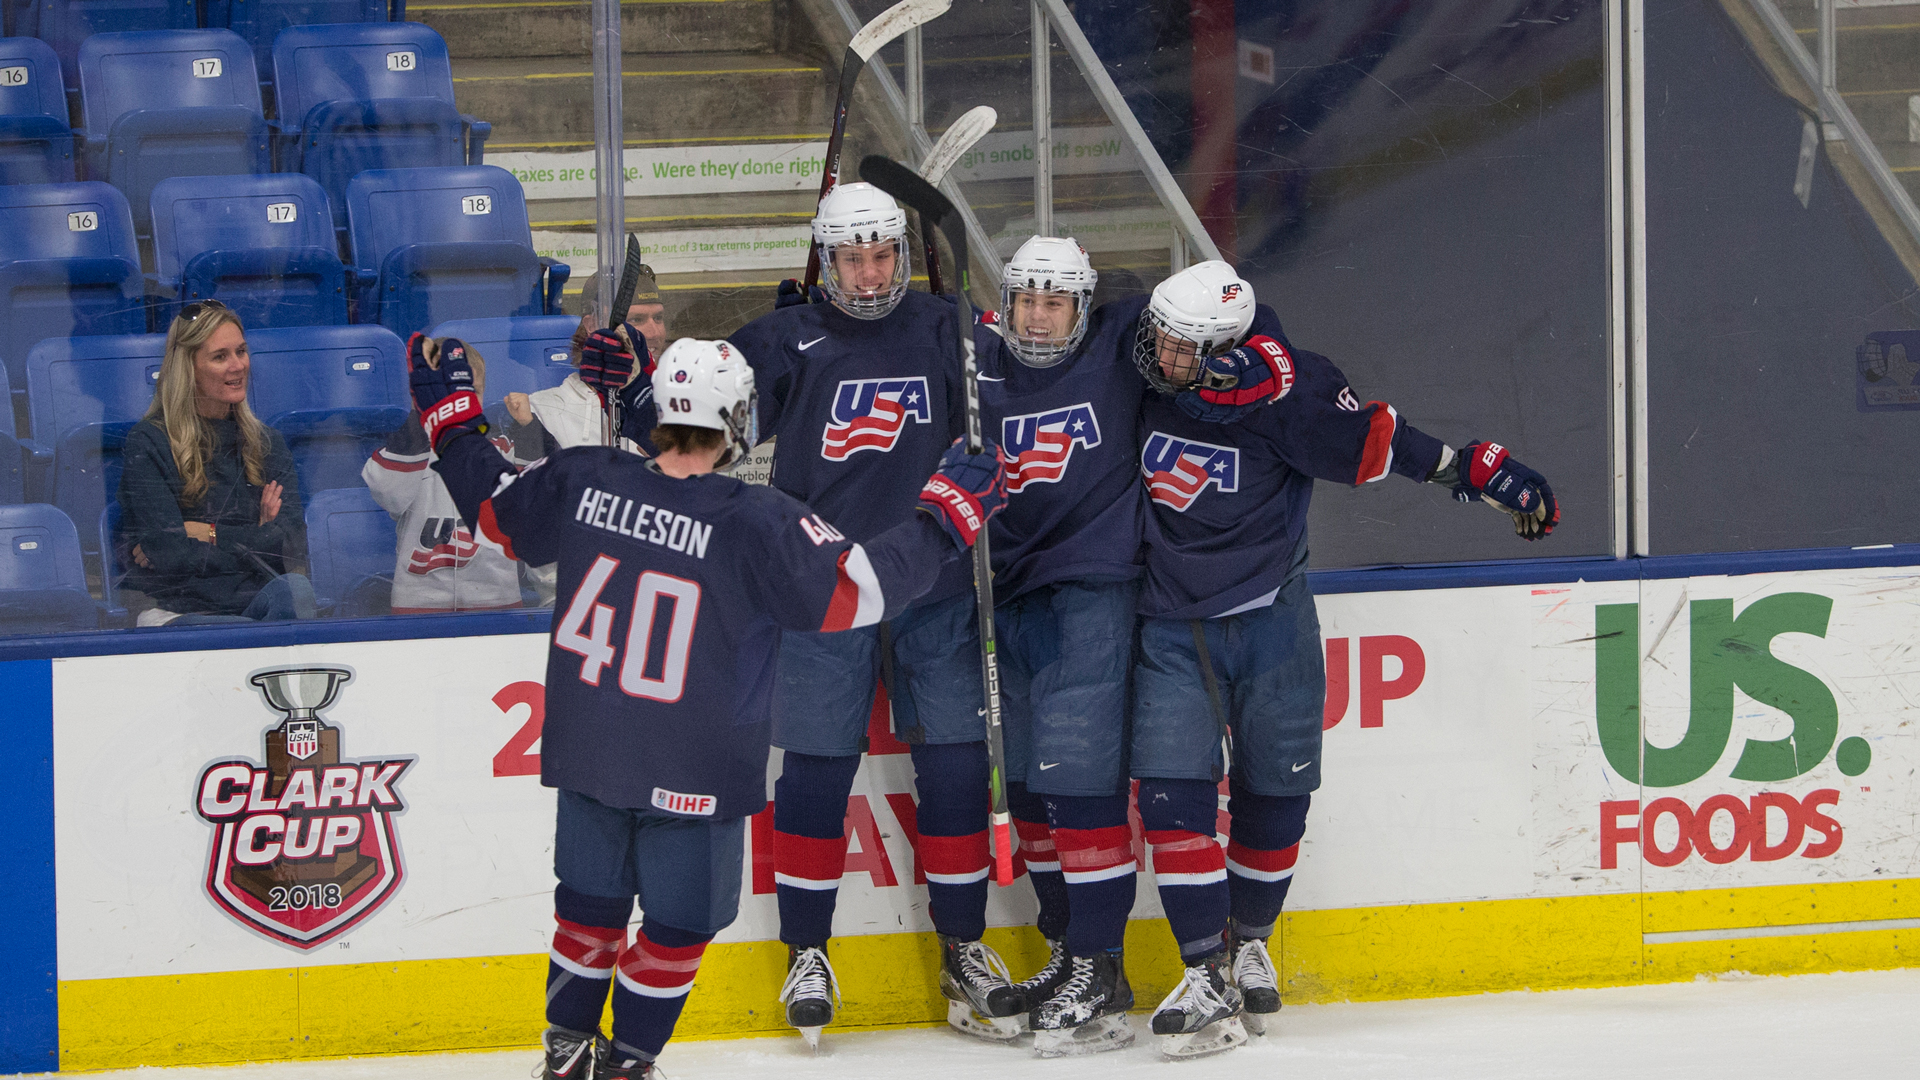 USHL: Team USA Evens Series With Youngstown; Skates Past Phantoms 10-6